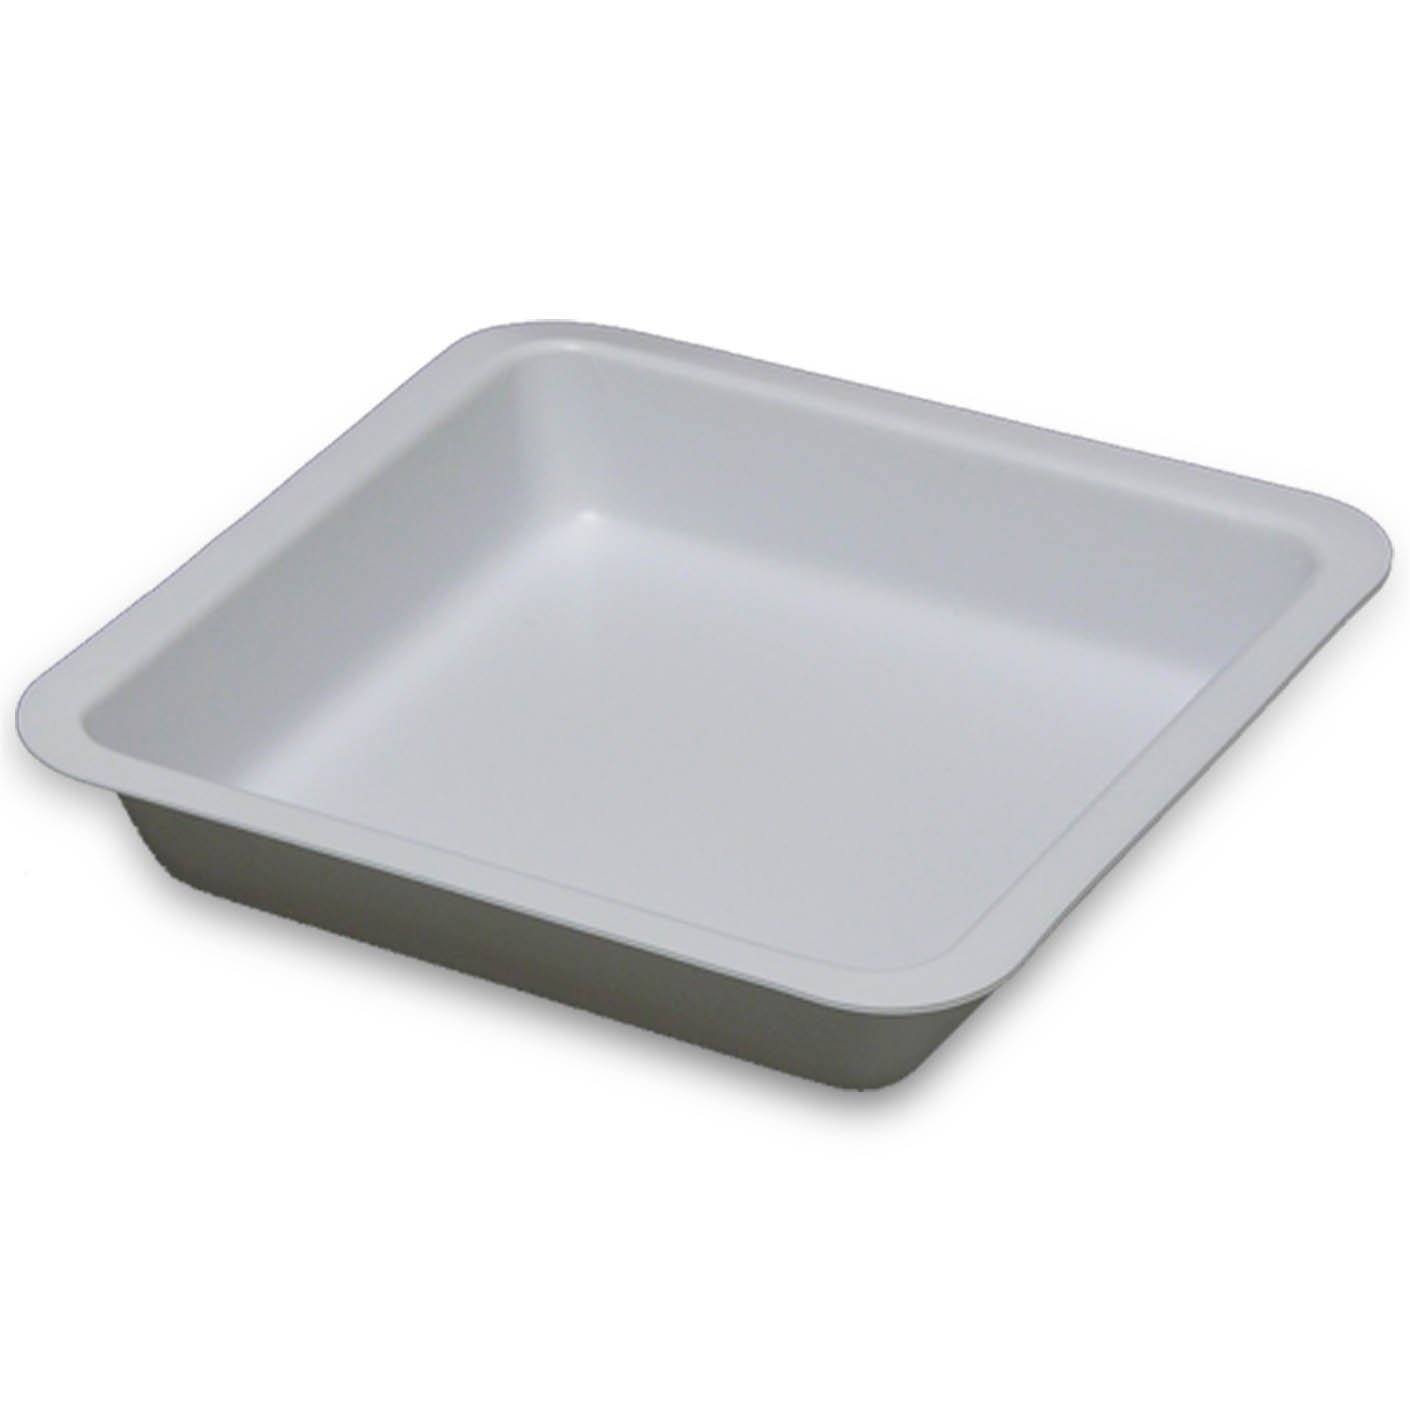 250mL White Antistatic Polystyrene Square Weigh Boat (500/Pack)